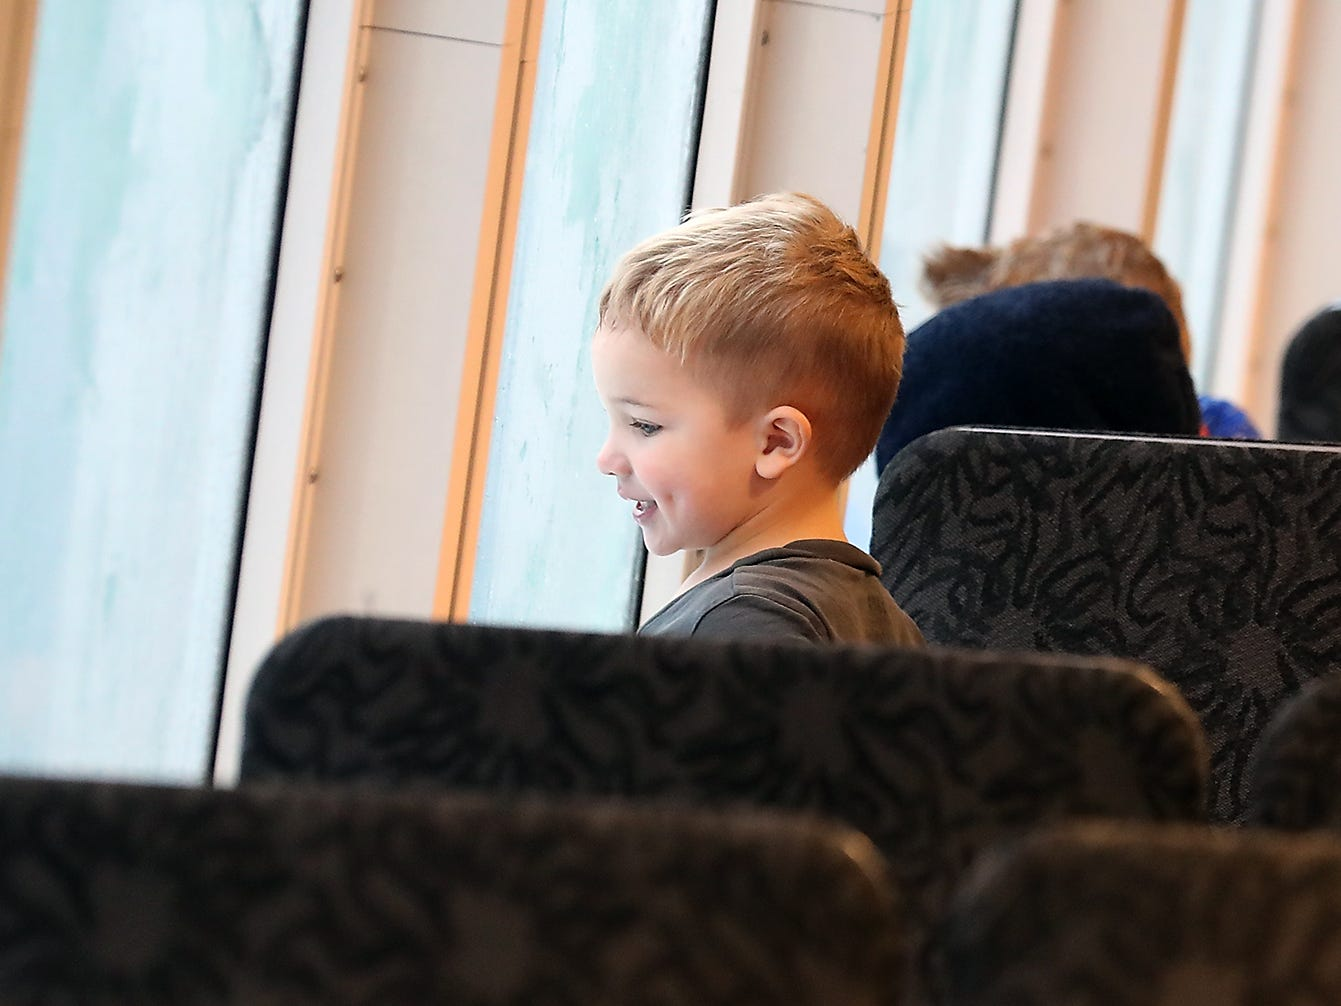 Jamie Sainsbury, 3, looks out the cabin window while riding the M/V Finest from Seattle to Kingston with his mother and brothers on Monday, November 26, 2018.